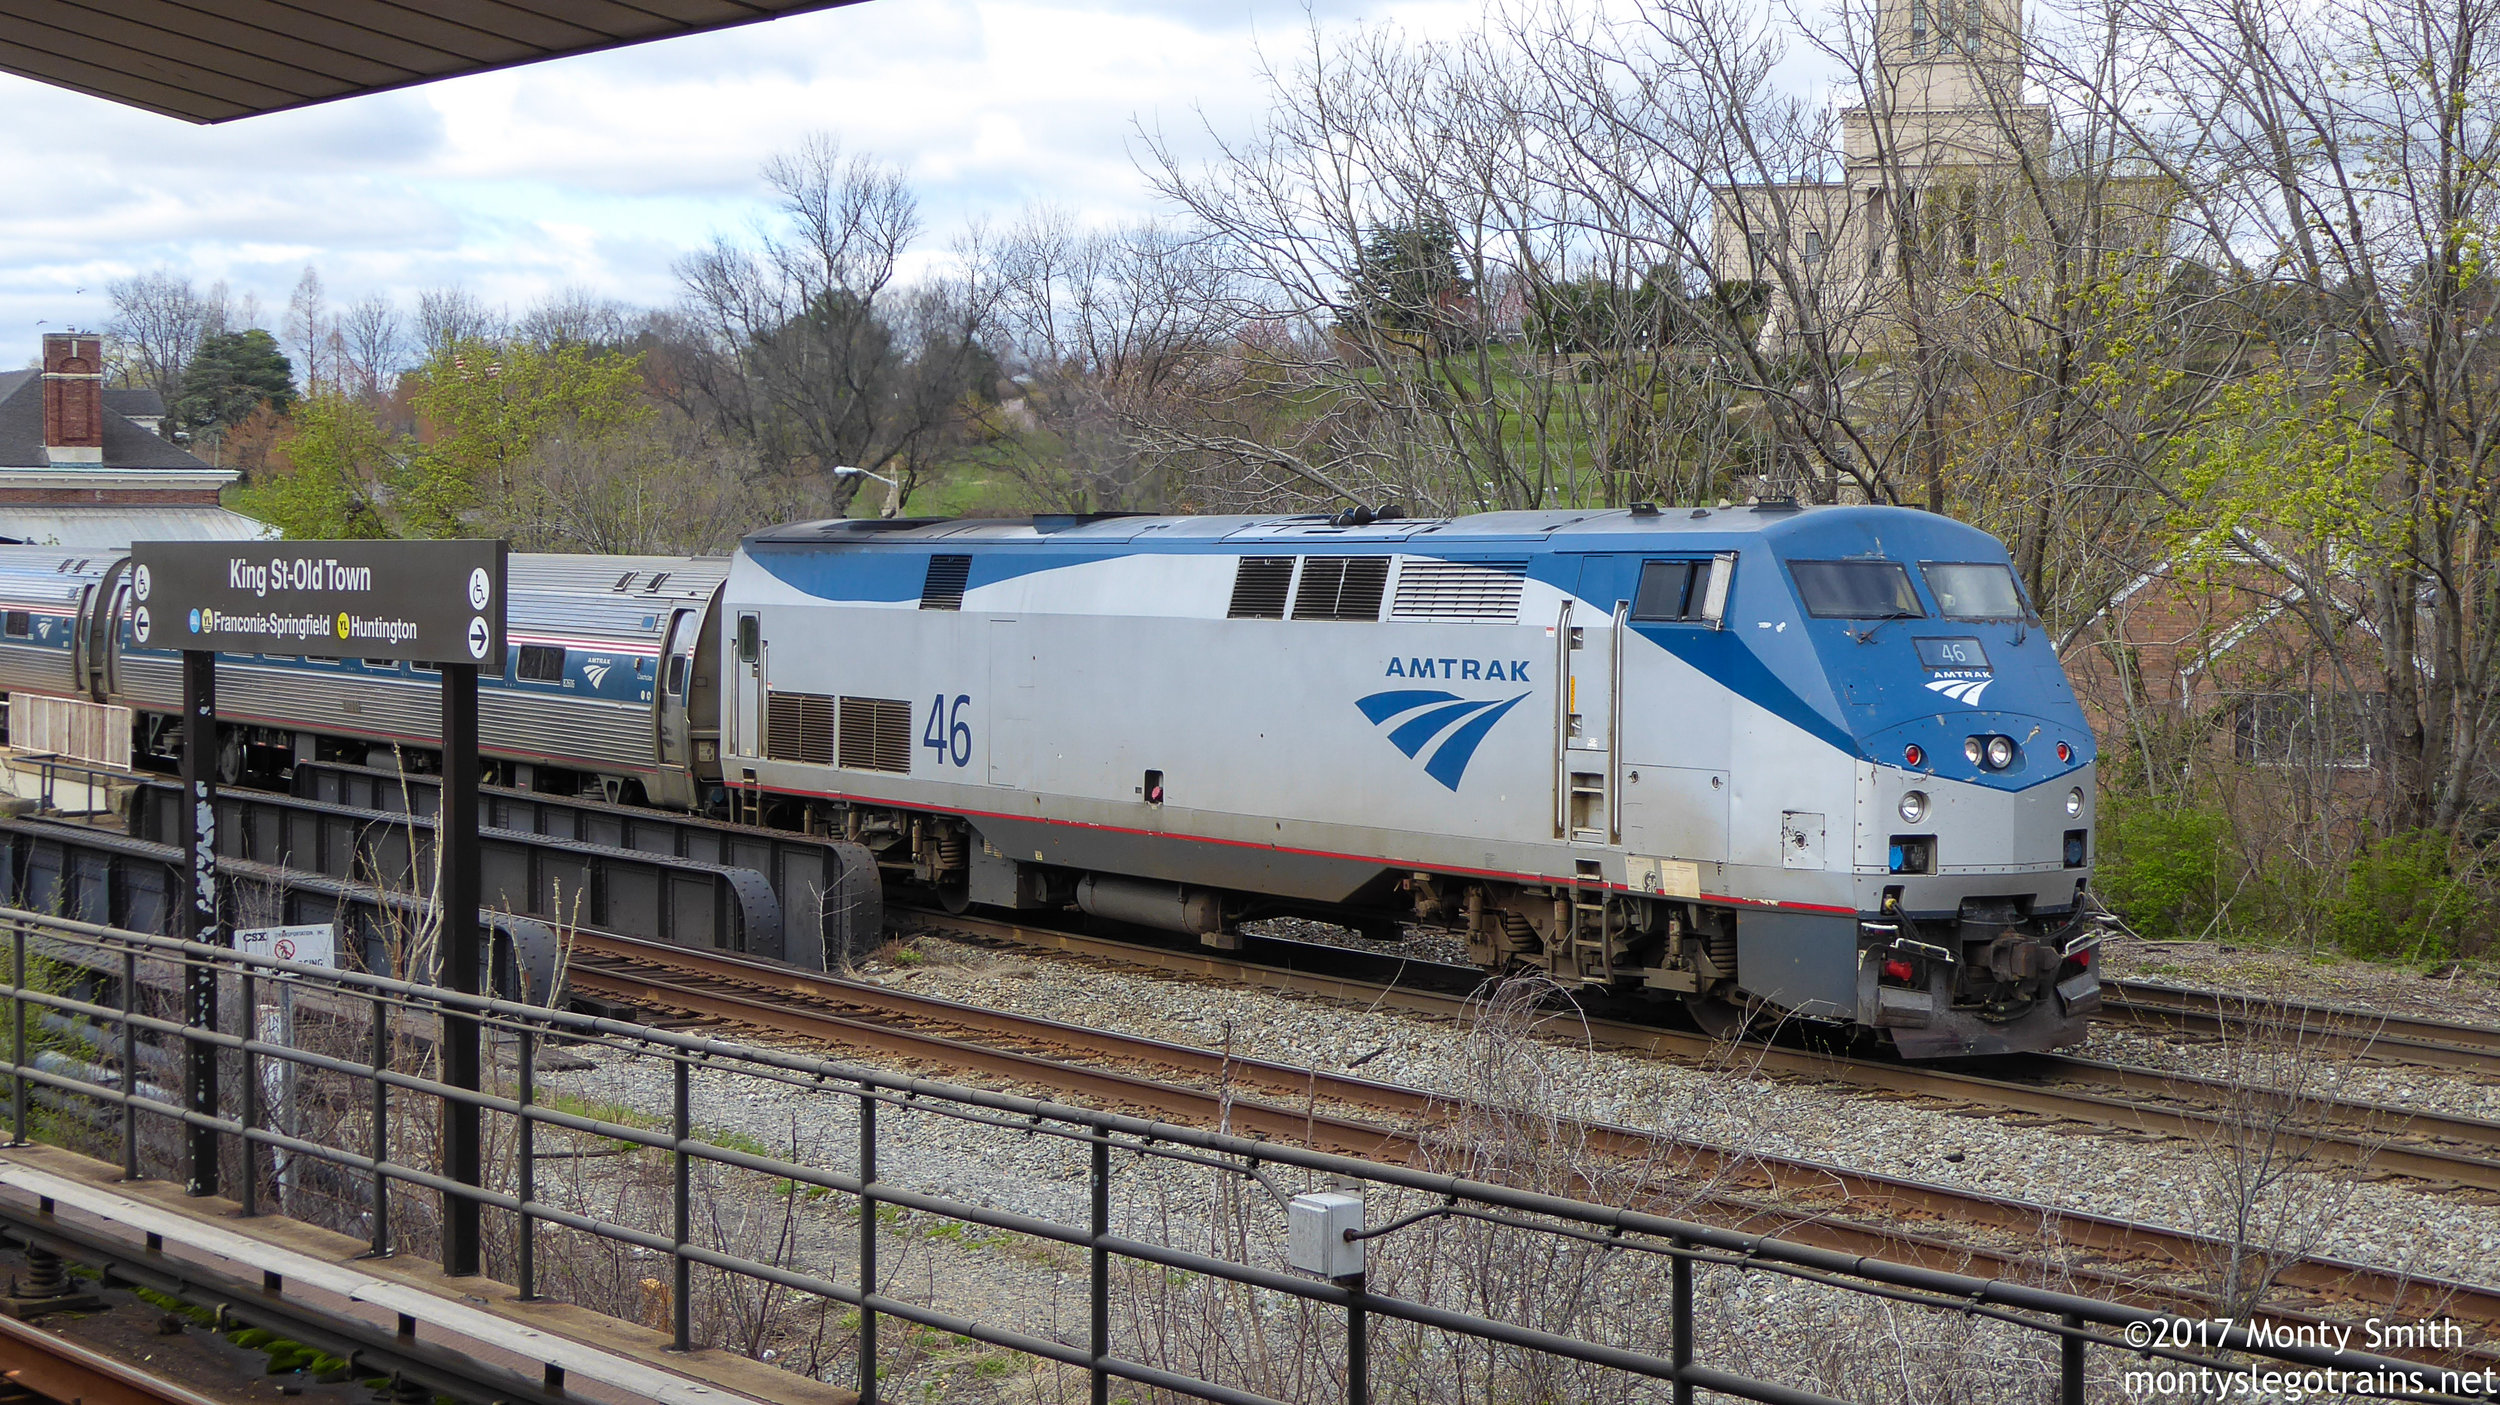 An Amtrak train pauses at Alexandria Union Station in Virginia, seen from the King Street Station of the Washington Metro System.